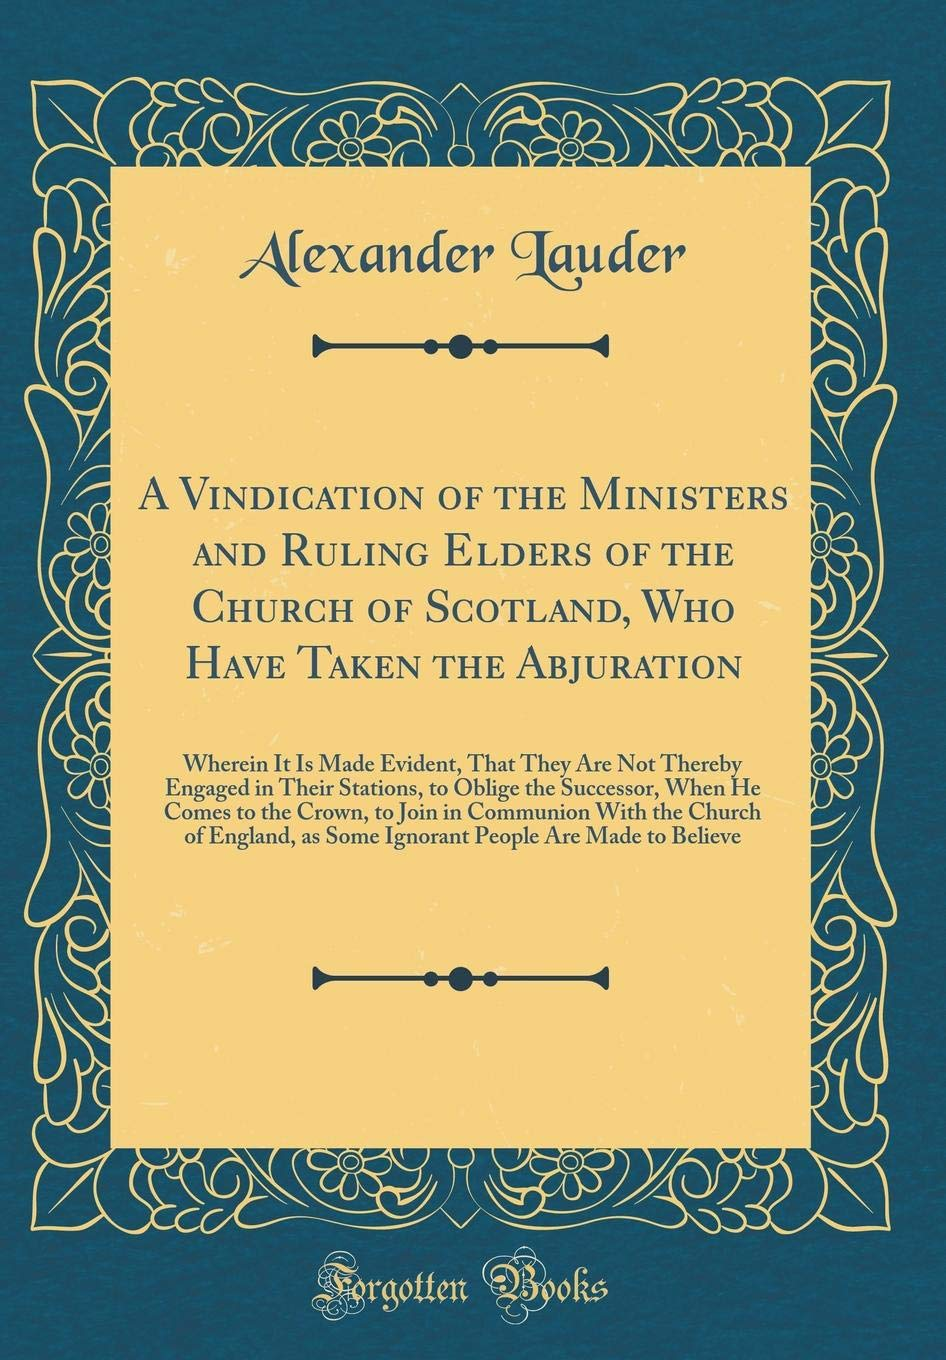 Read Online A Vindication of the Ministers and Ruling Elders of the Church of Scotland, Who Have Taken the Abjuration: Wherein It Is Made Evident, That They Are ... When He Comes to the Crown, to Join in Com PDF